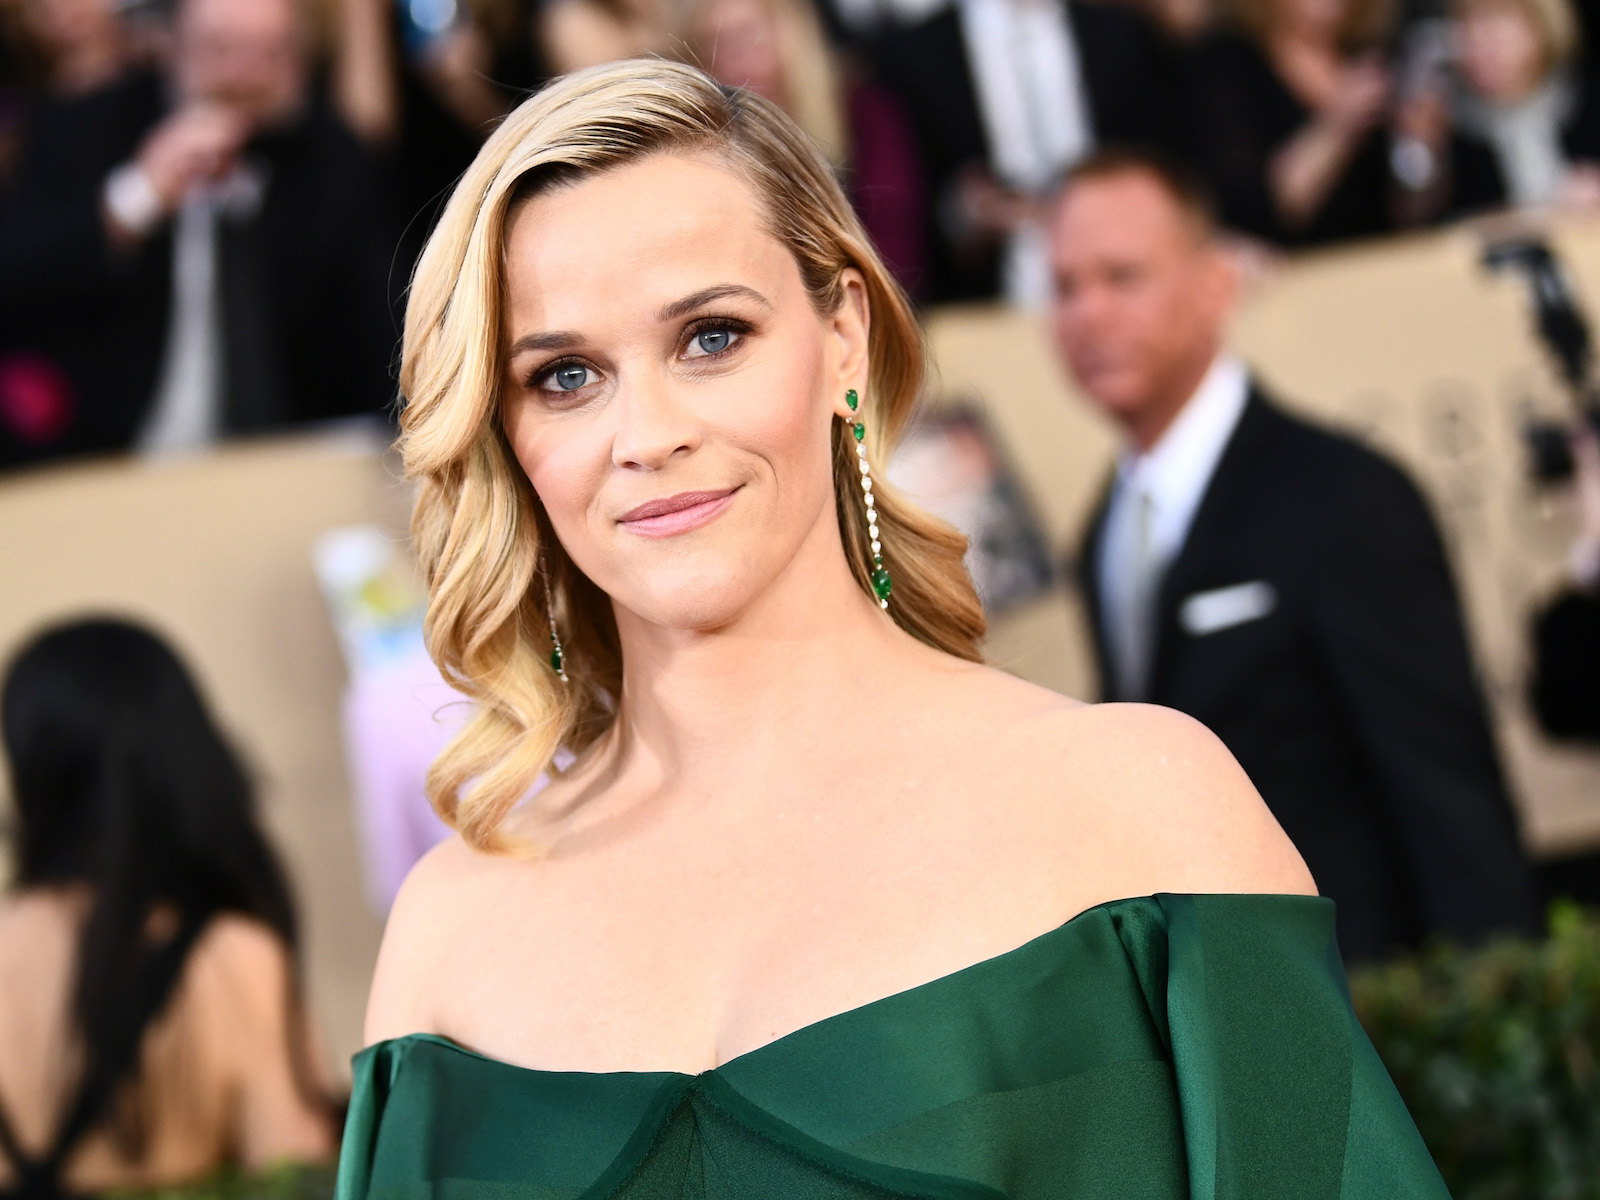 Reese Witherspoon's New Book 'Whiskey in a Teacup' Arrives This September